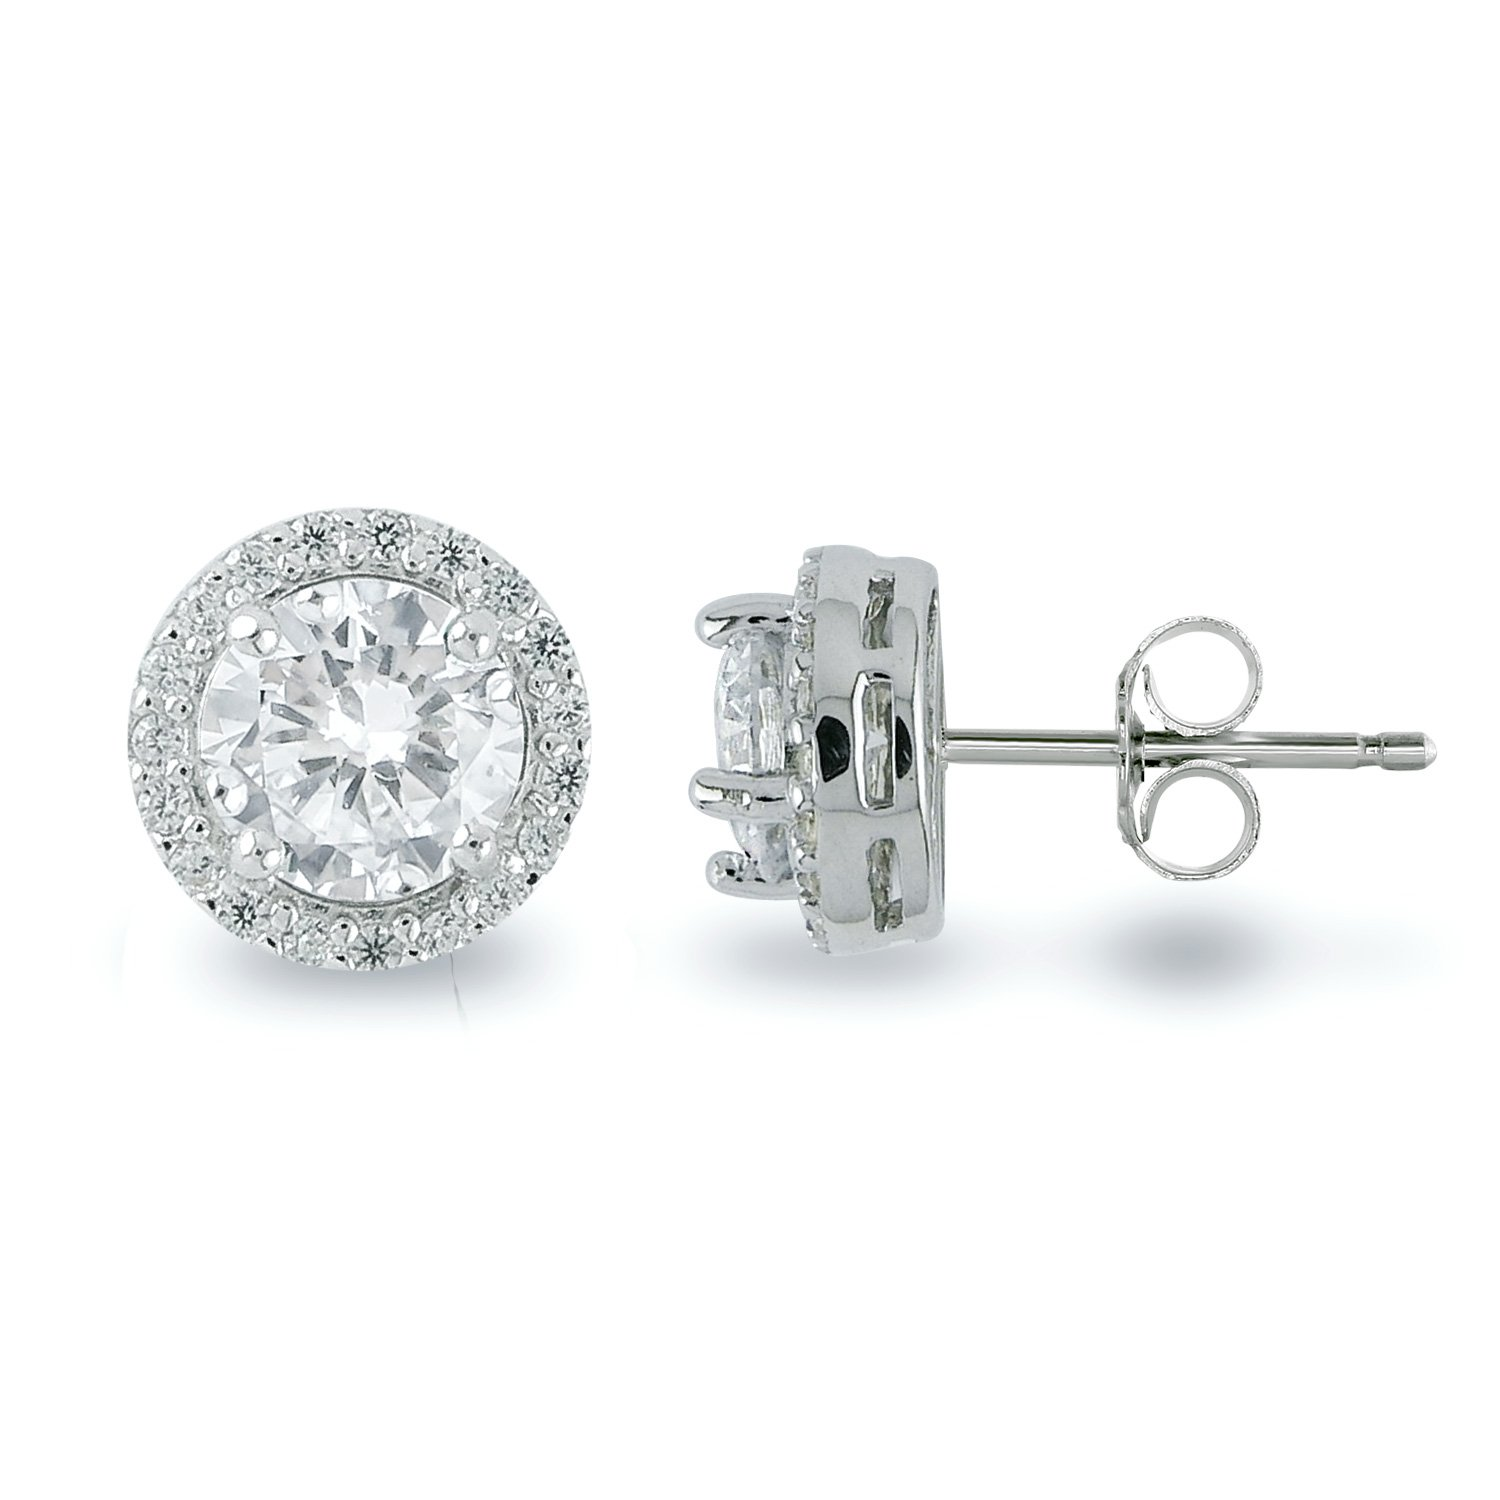 Rhodium Plated Sterling Silver Cubic Zirconia Halo Stud Earrings, Center Stone 6mm